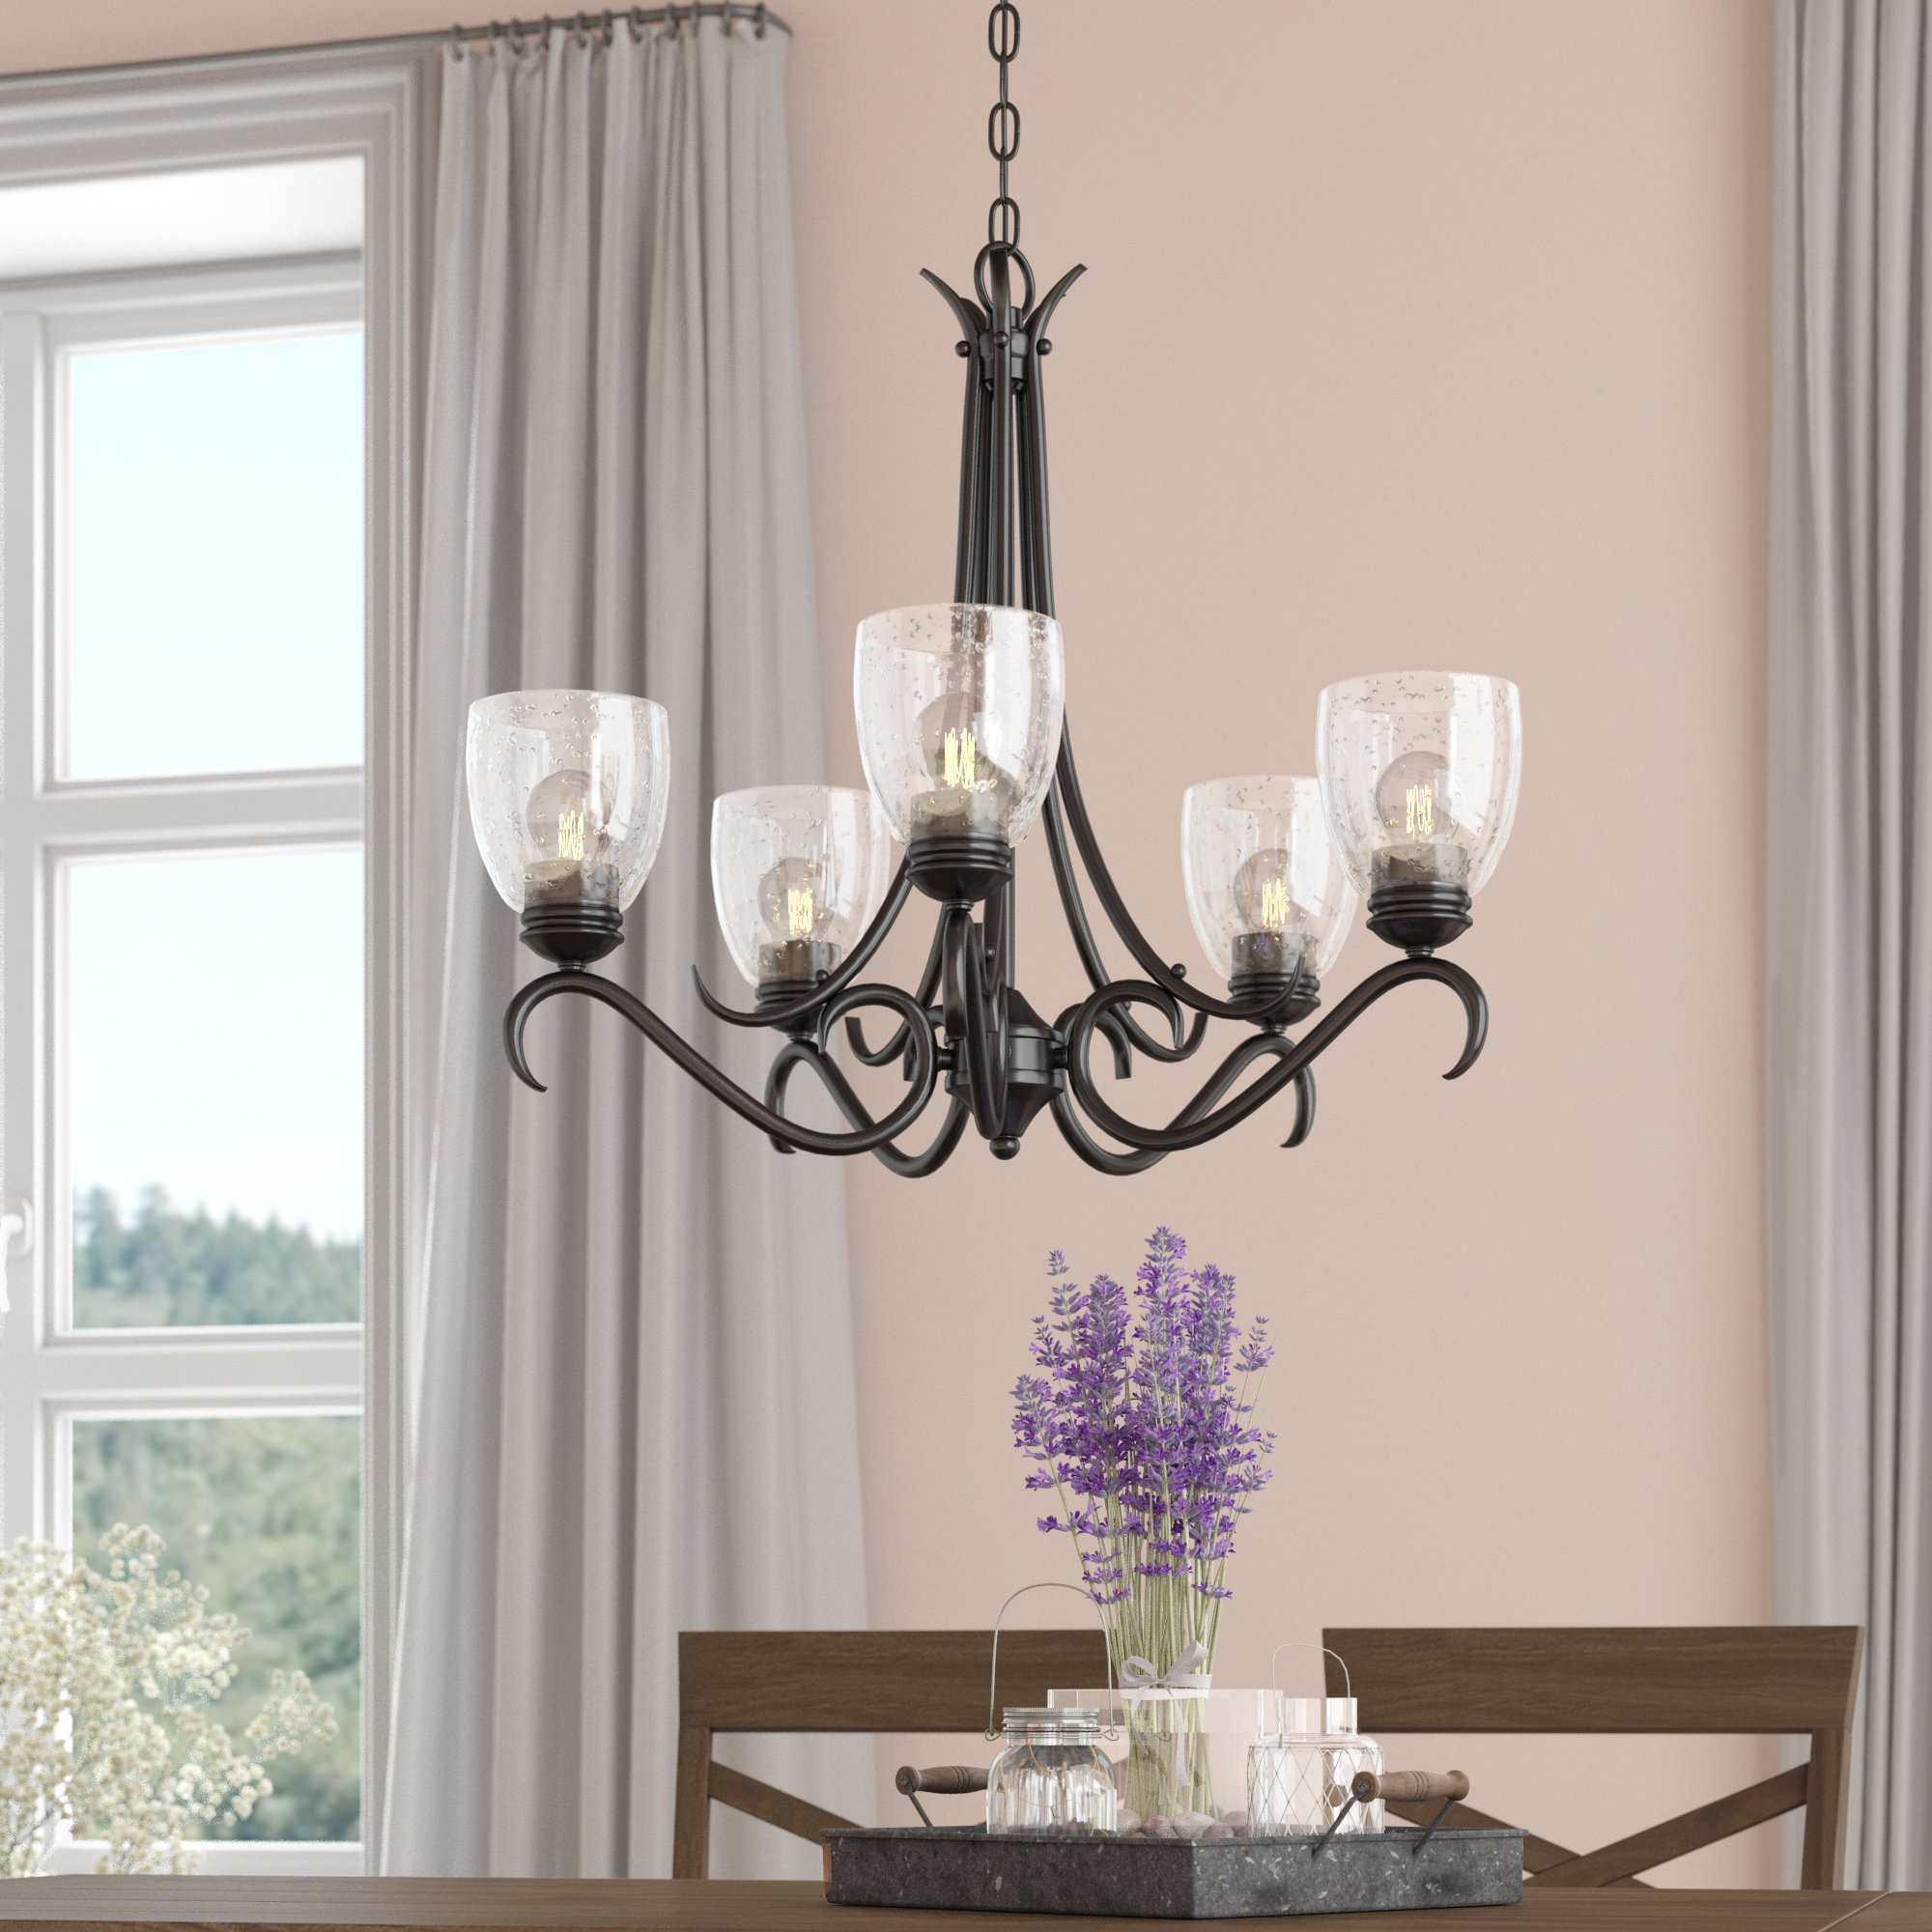 Laurel Foundry Modern Farmhouse Sheila 5 Light Shaded Within Gaines 5 Light Shaded Chandeliers (View 9 of 30)